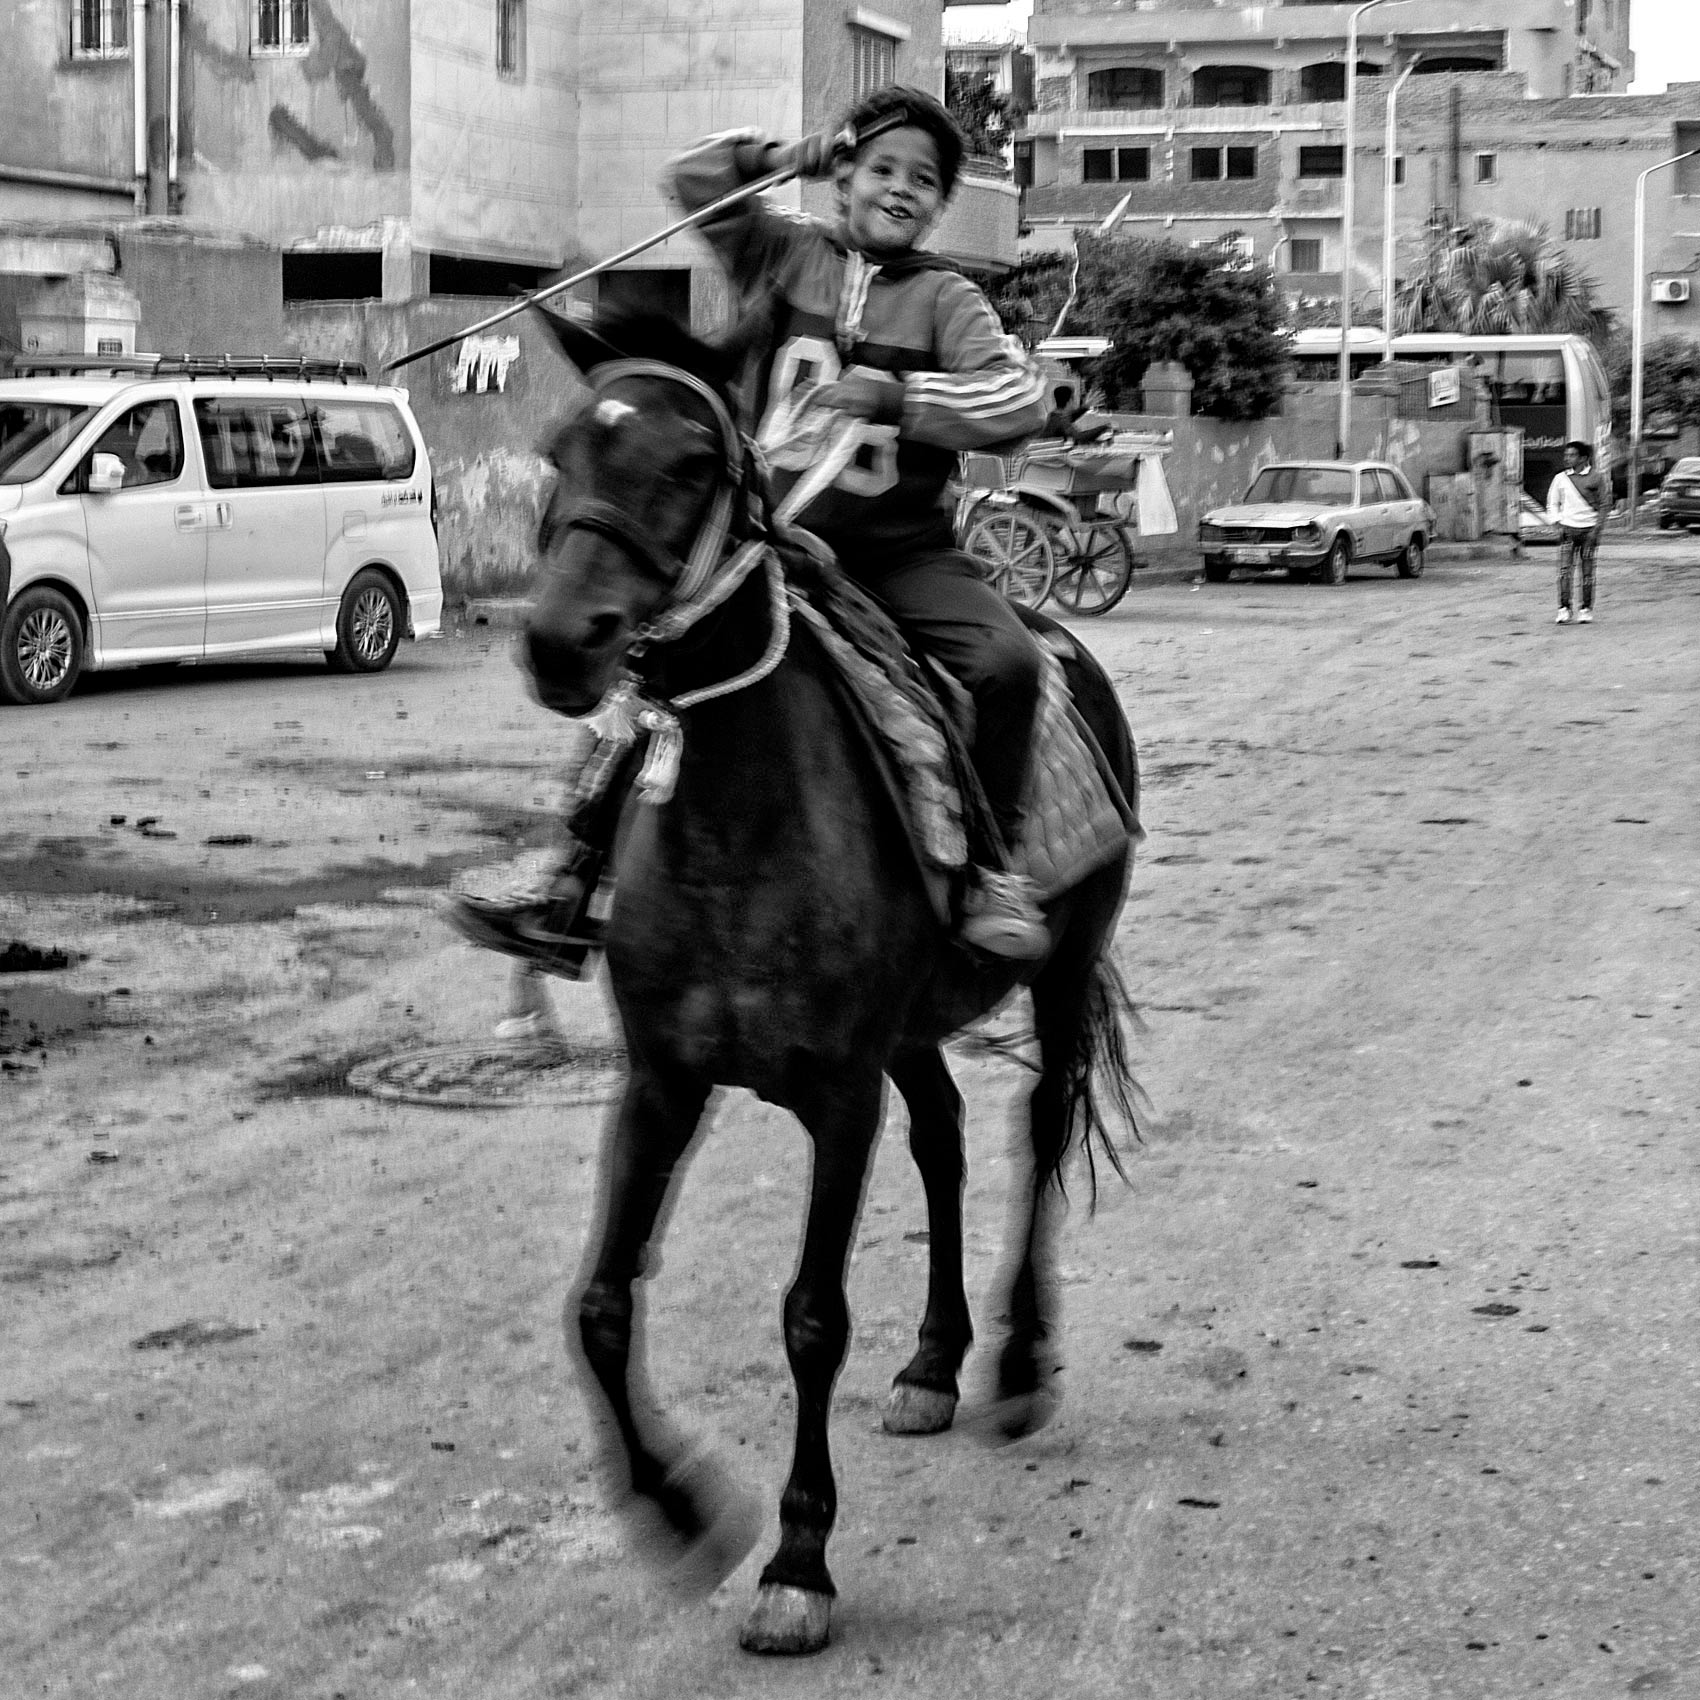 a young boy laughs while riding a horse on the streets of giza egypt